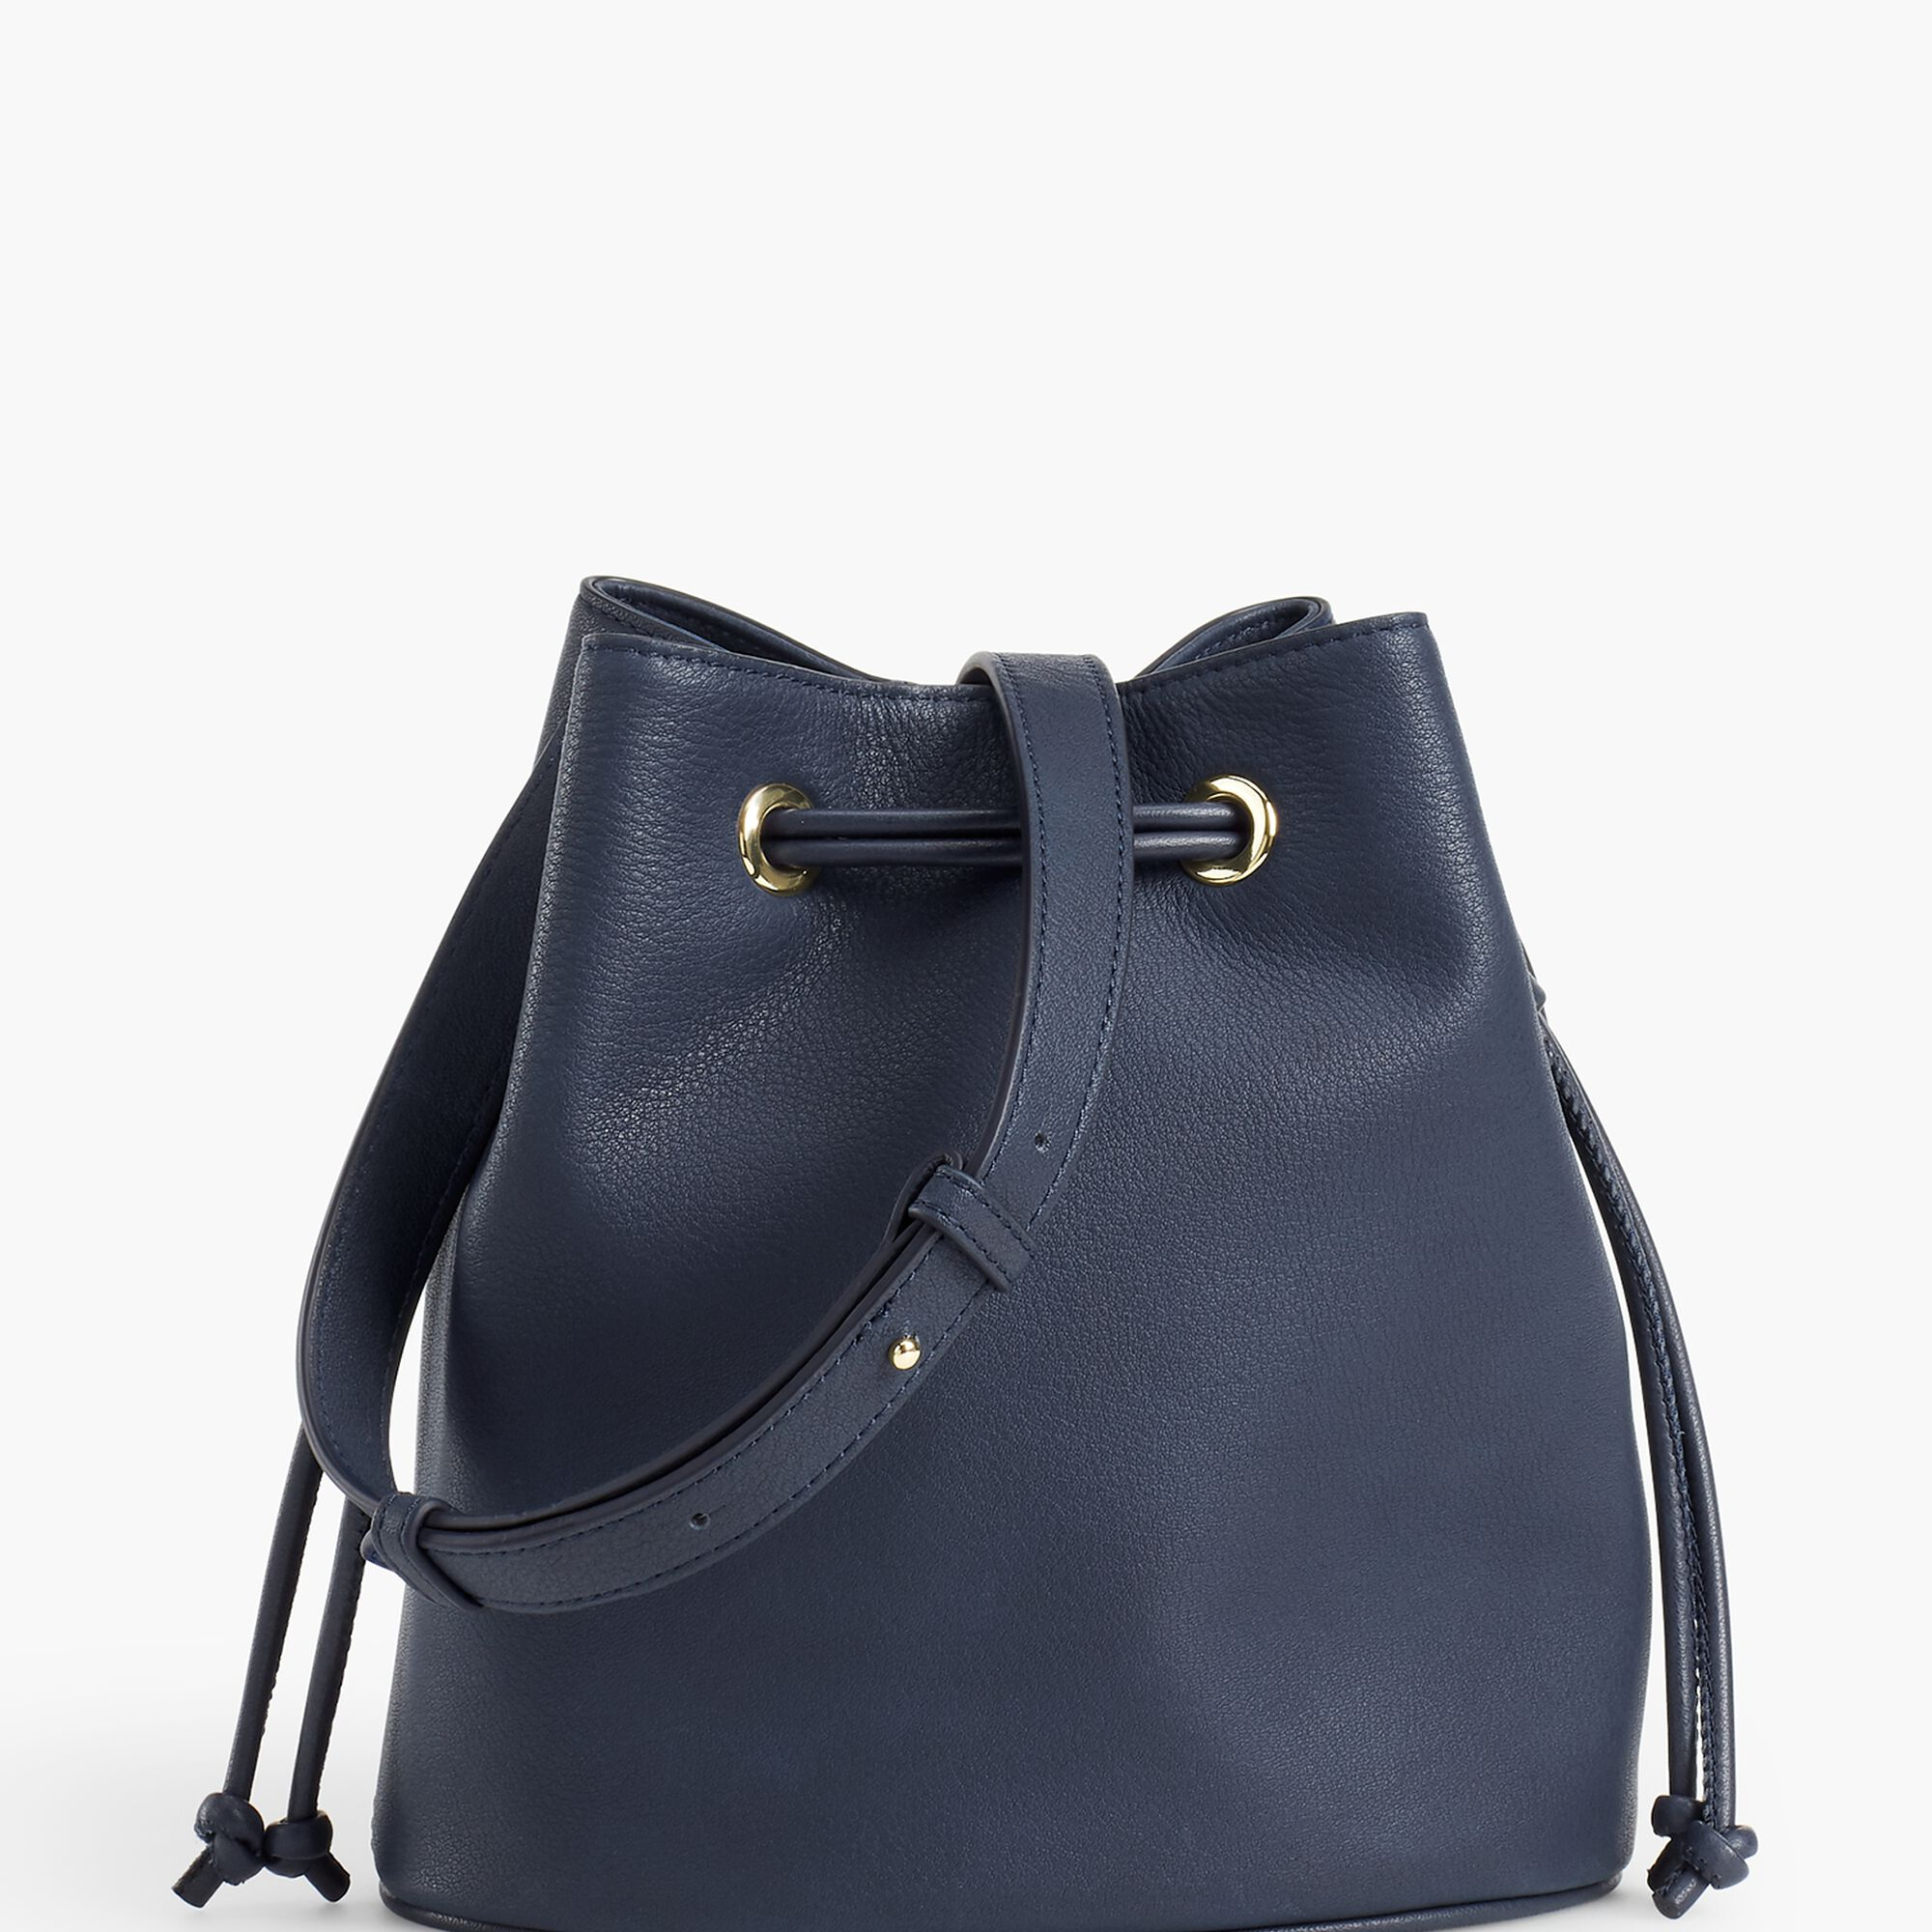 Images. Drawstring Bucket Bag - Pebble Leather 7ff3b46e285a2